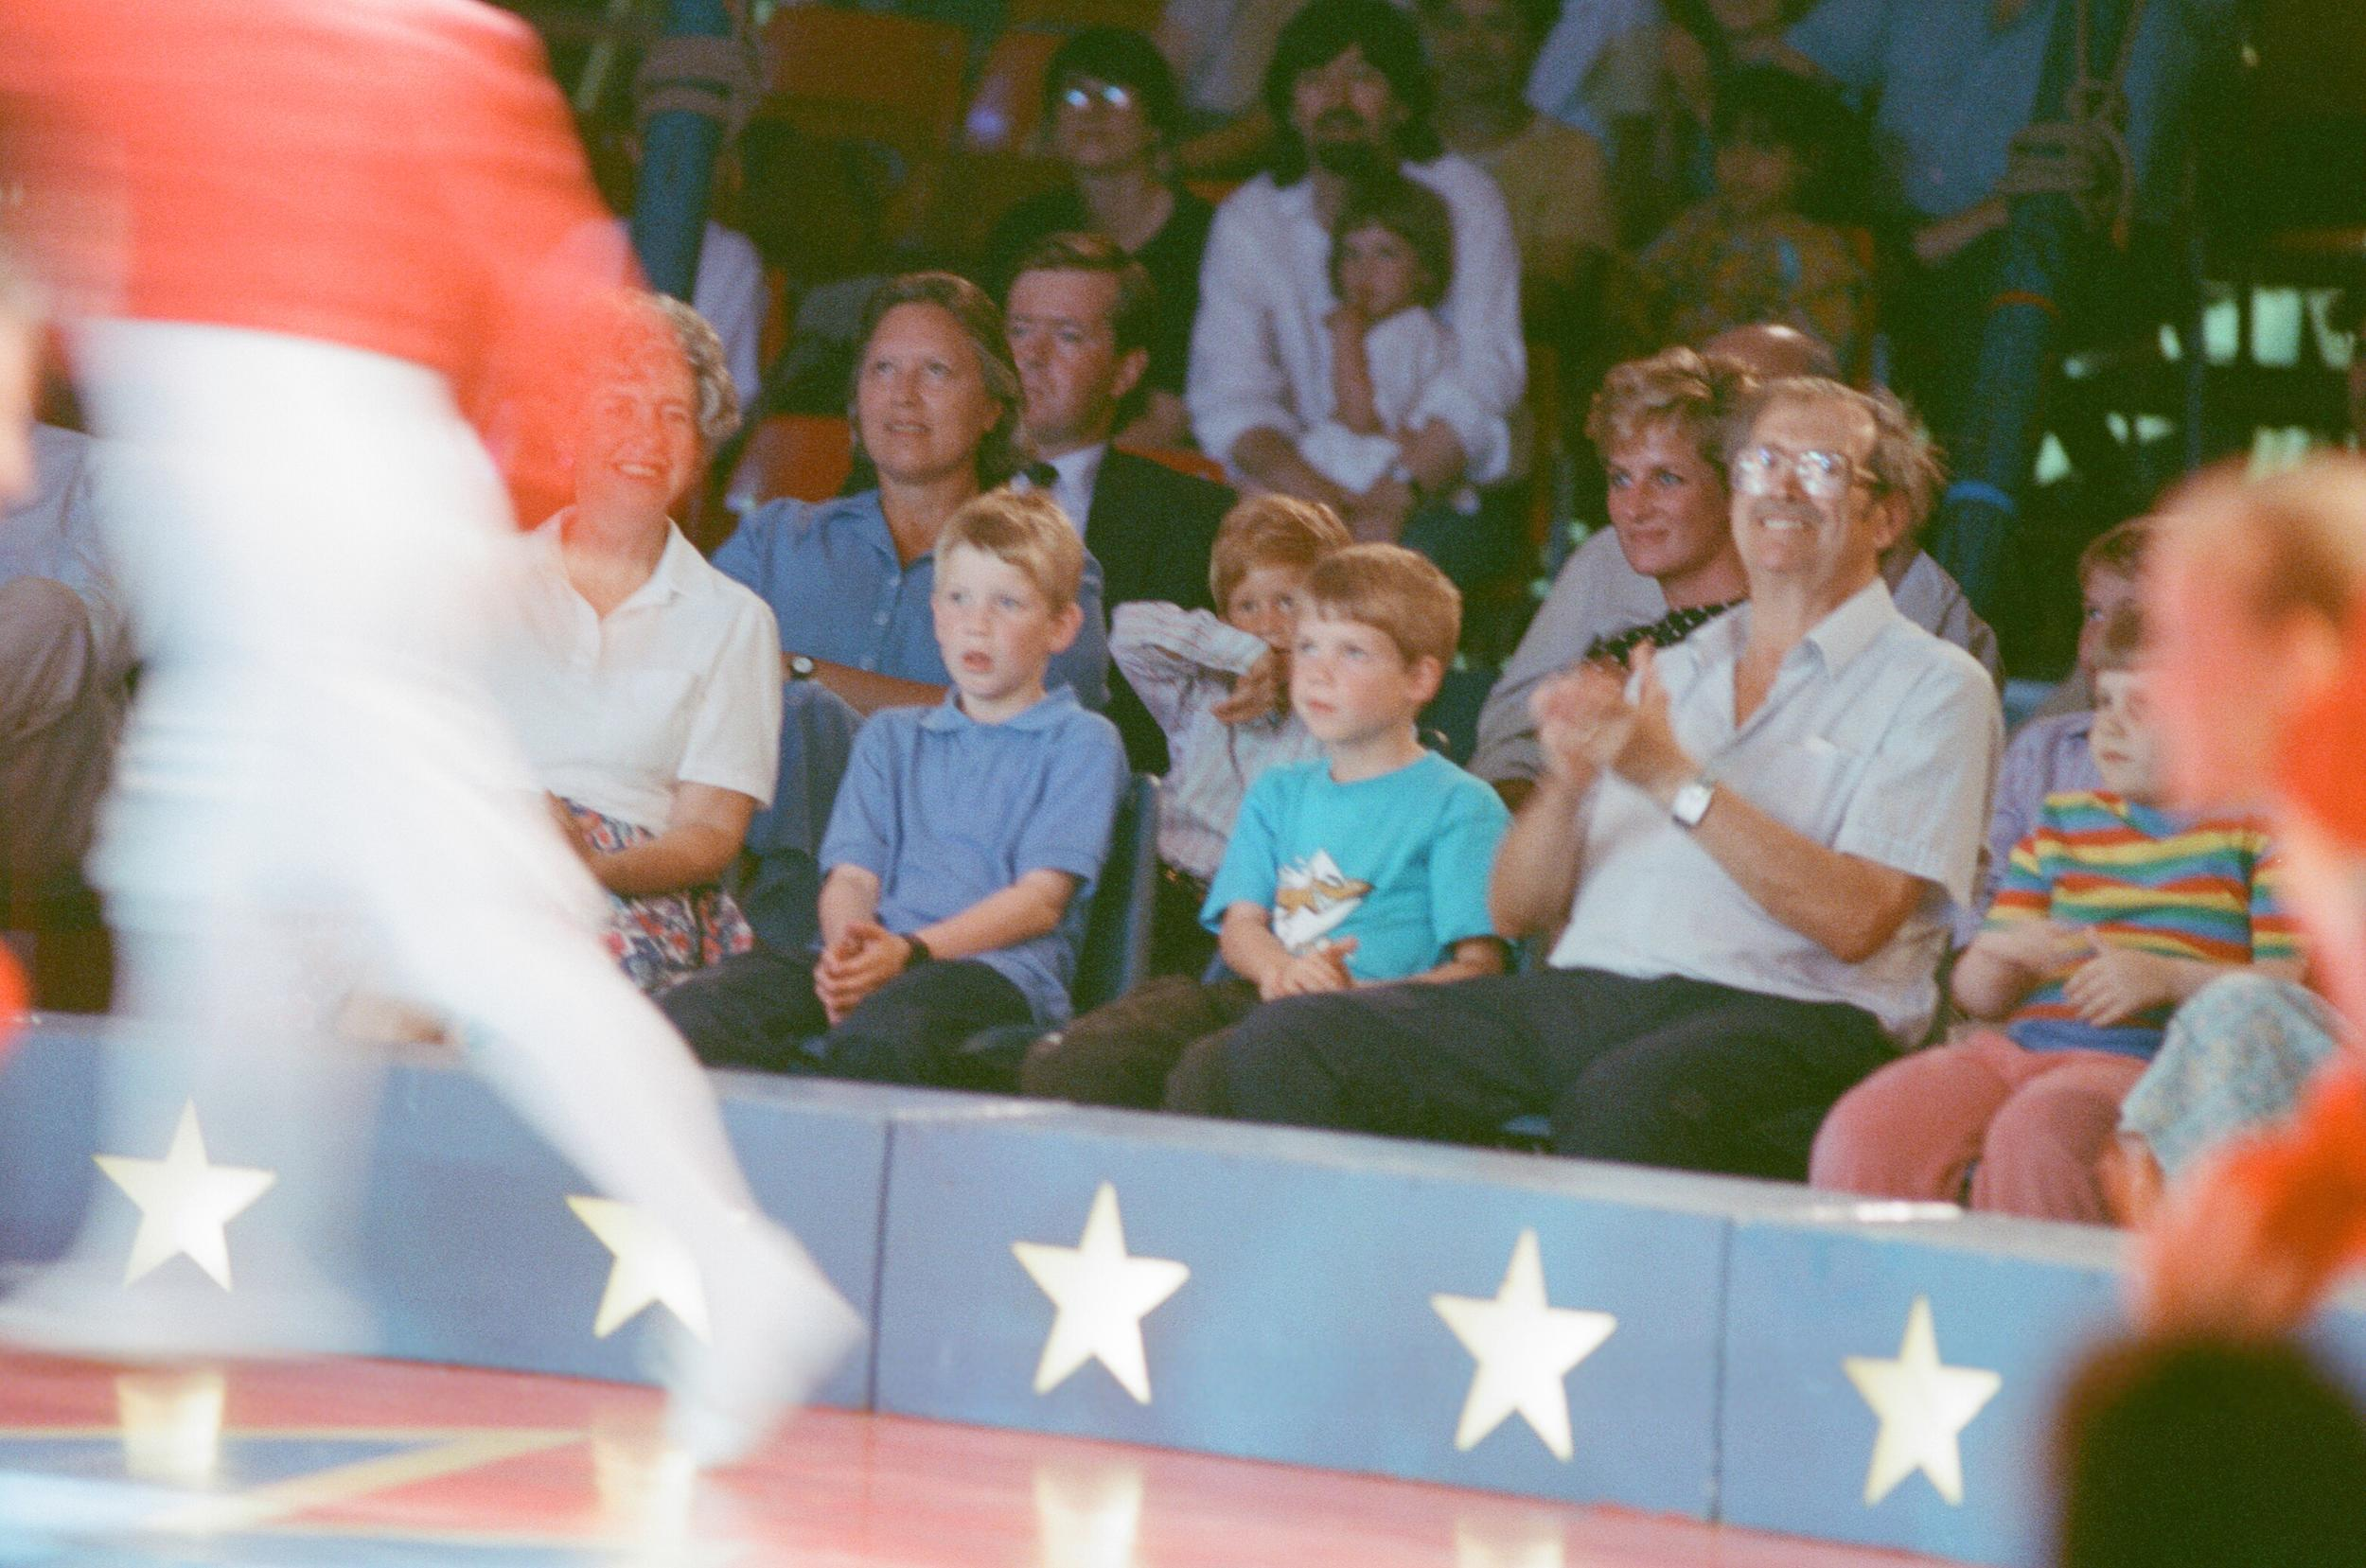 The Princess of Wales, Princess Diana, along with her songs William and Harry enjoy the day at Le Cirque du Soleil, the Children's Circus. Picture shows Diana in the 2nd row, with Prince Harry visible sitting the his mothers right (picture left) Picture taken 8th August 1990. (Photo by Chris Grieve/Mirrorpix/Getty Images)